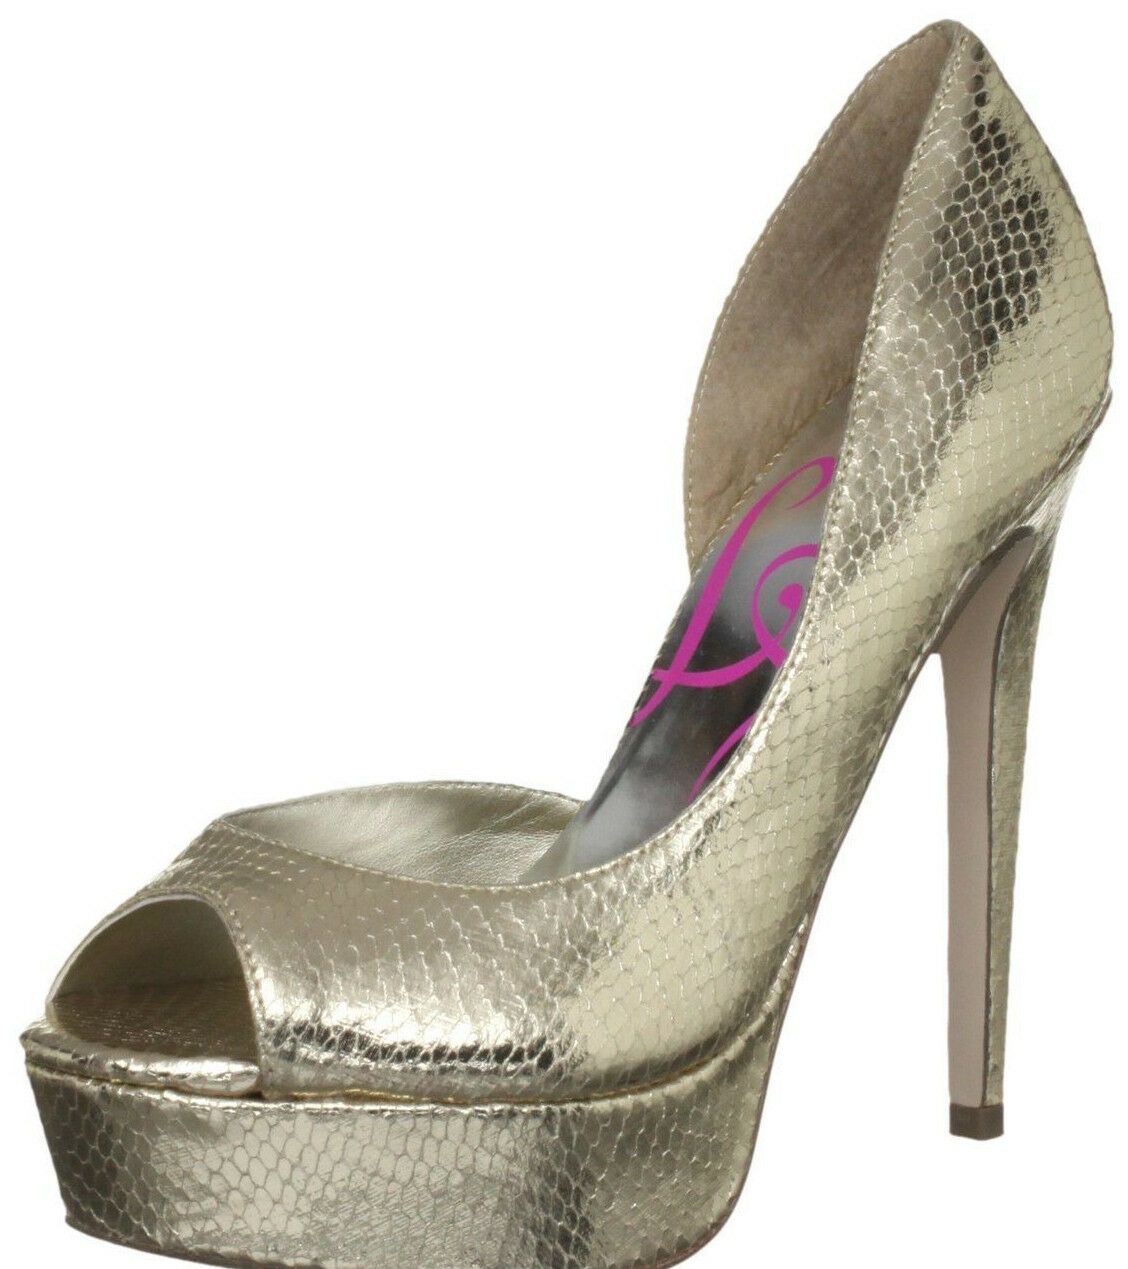 BNIB RRP  LIPSY SIZE 3 4 5 6 7 gold METALLIC JAYLEE HIGH HEEL PLATFORM SHOES